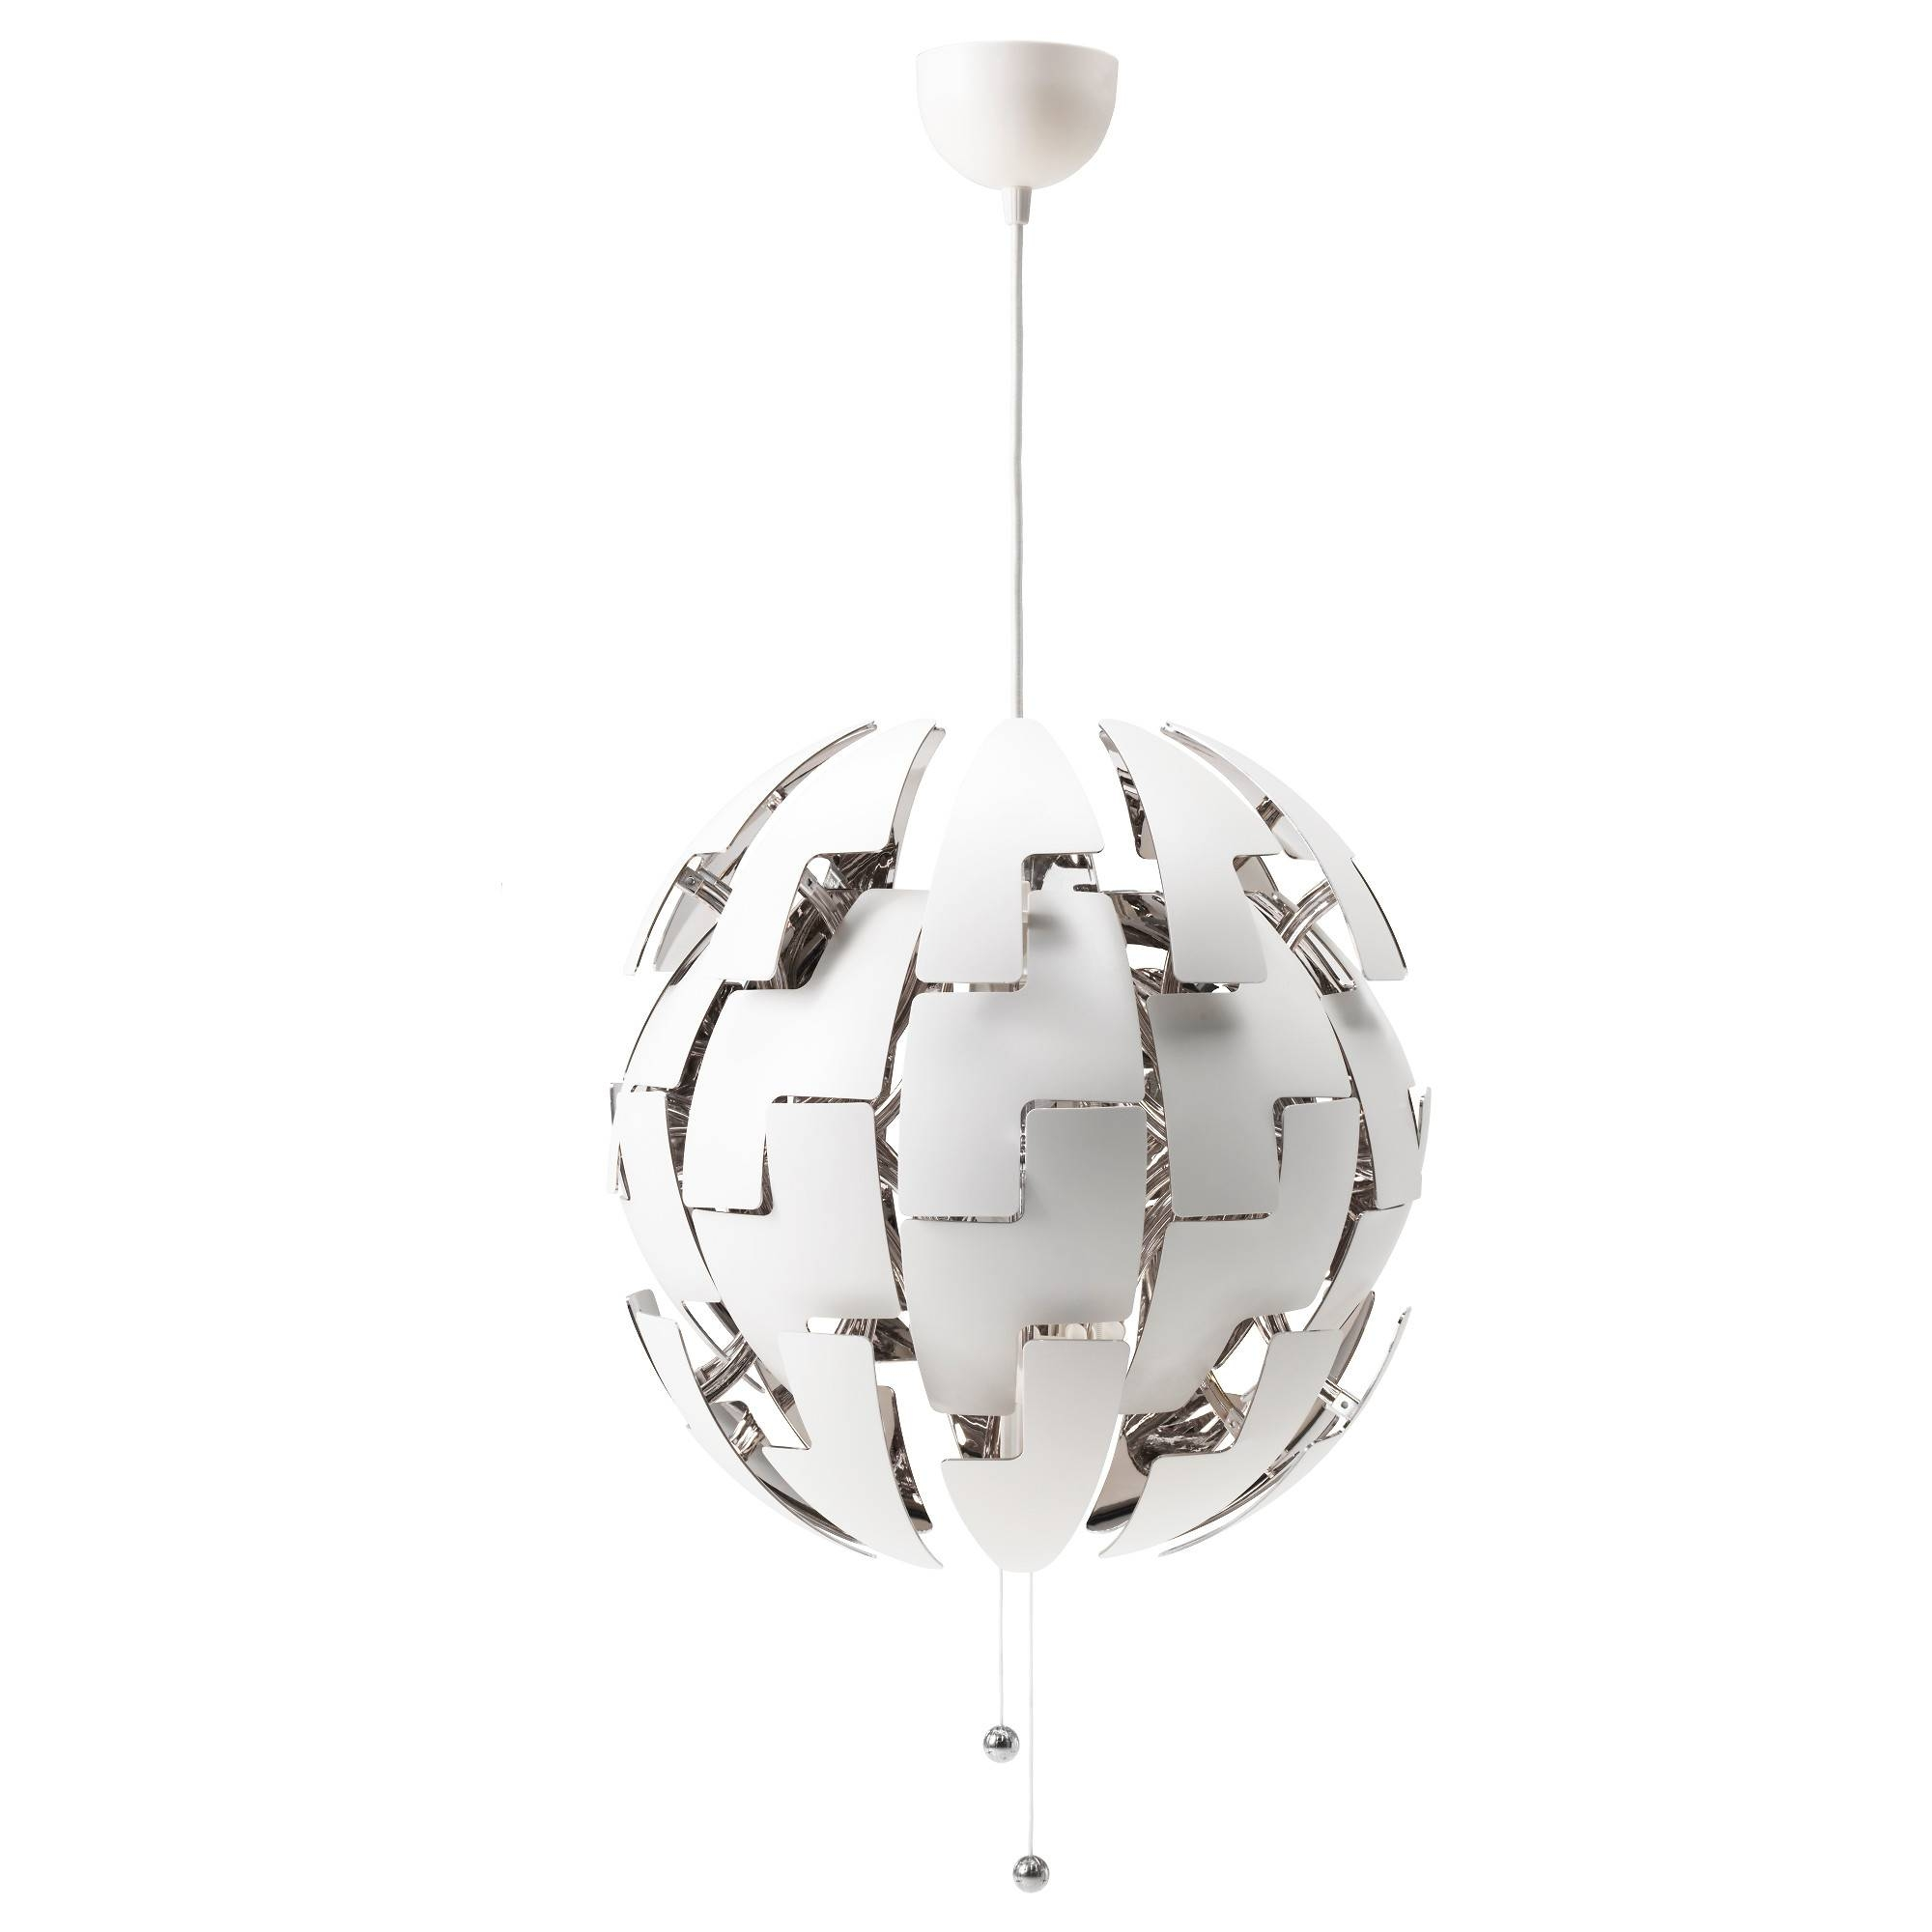 Ikea Ps 2014 Pendant Lamp – White/copper Color – Ikea Throughout Coloured Cord Pendant Lights (View 8 of 15)